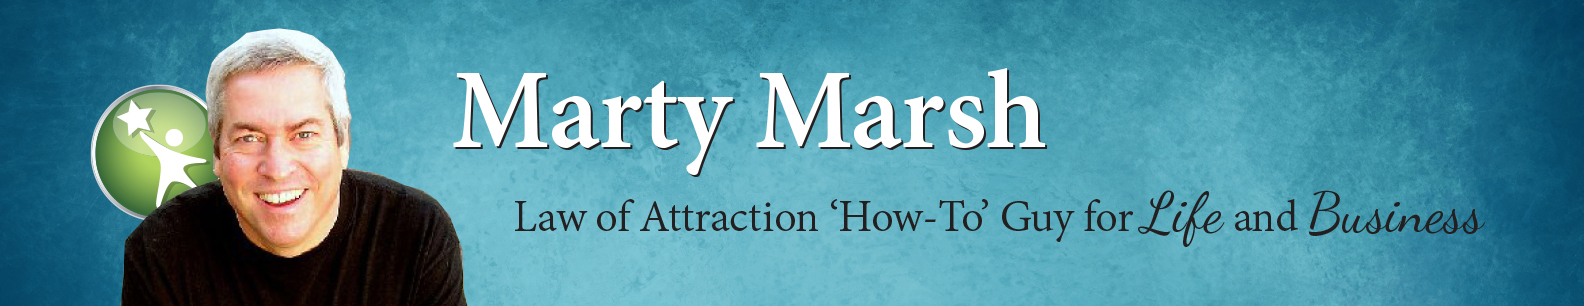 Inspire, uplift and motivate your people with a dynamic, interactive Law of Attraction presentation by Marty Marsh